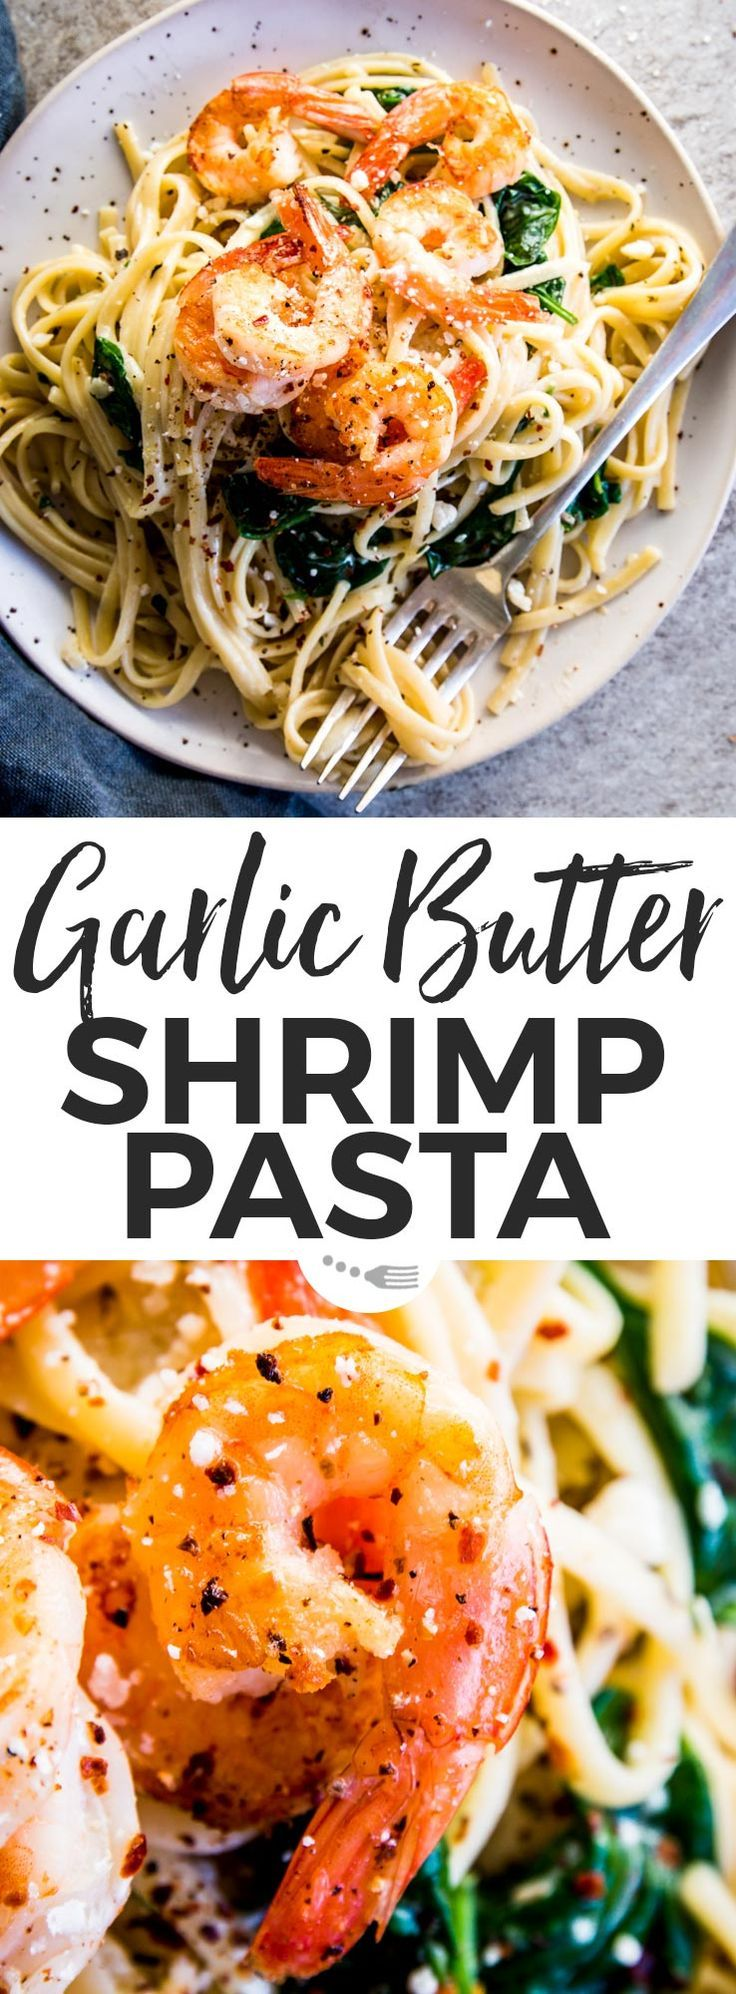 This Garlic Butter Shrimp Pasta is the quick weeknight dinner you've been looking for! Linguine smothered in a creamy sauce full of lemon and garlic flavors, tossed with browned shrimp. Quick to make (just 20mins!) and fancy enough for date night in or dinner party guests - the key to every pasta lover's heart! | #recipes #easyrecipes #easydinner #dinner #pasta #datenight #valentinesday #shrimp